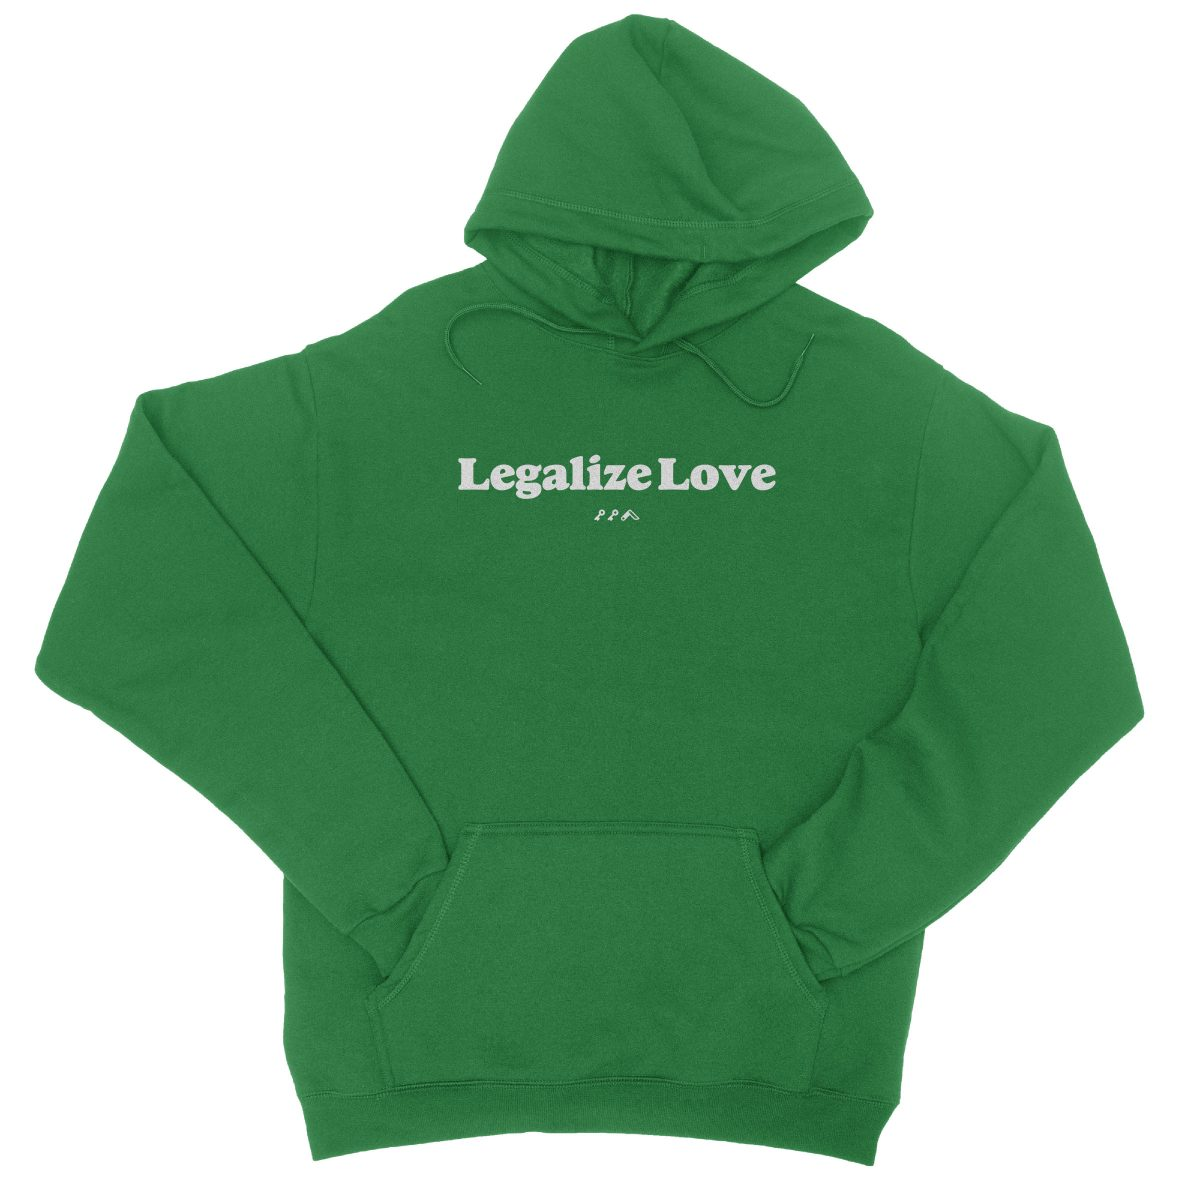 """Legalize Love"" is love womens march hoodies in green at kikicutt.com"